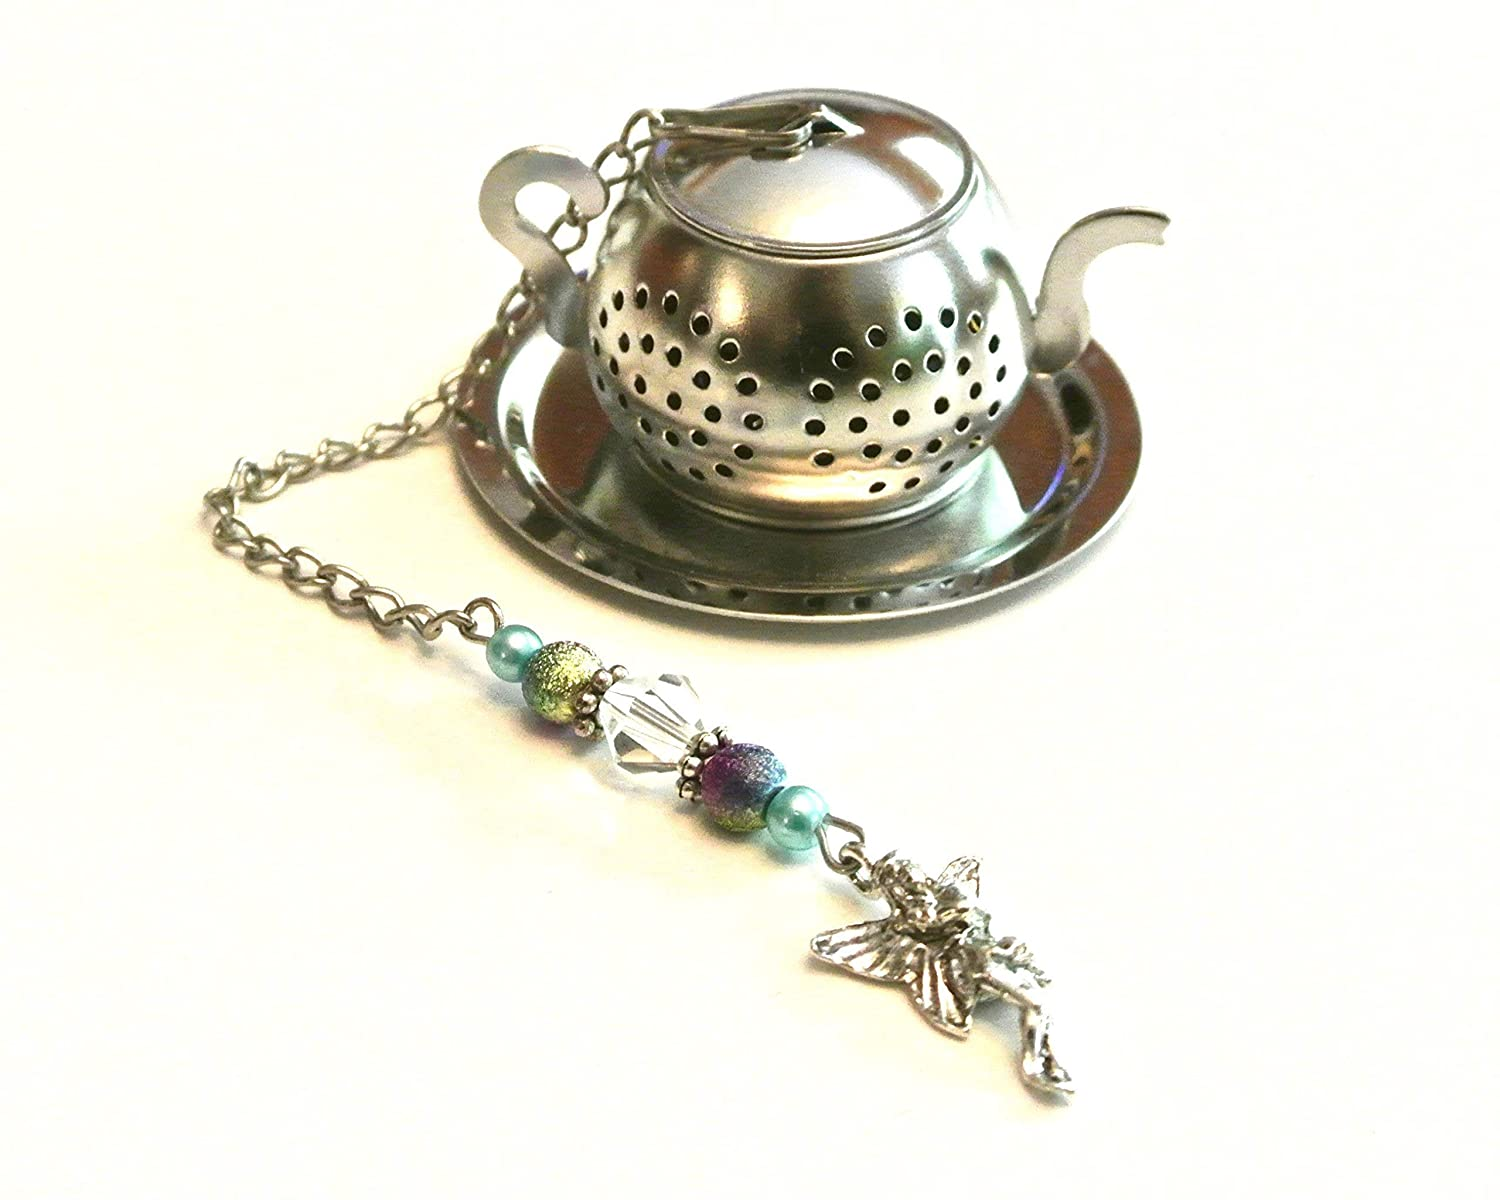 Fairy Charm Tea Infuser with Purple & Turquoise-Blue Colored Beads